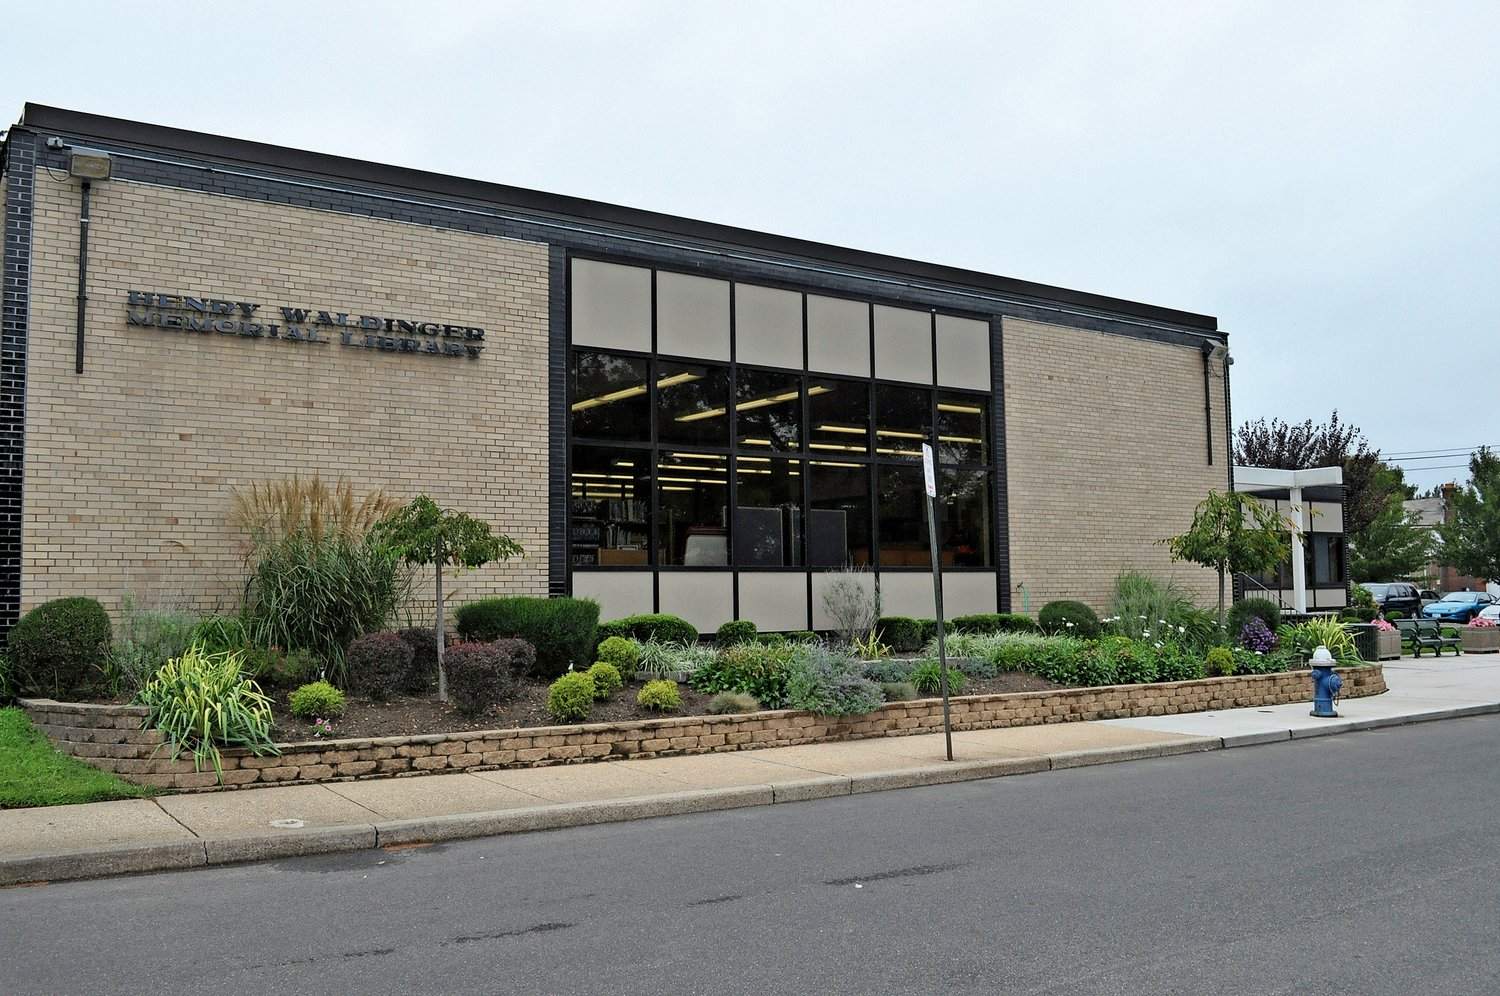 The Henry Waldinger Memorial Library is participating in the 2019 Nassau Library Tour challenge.